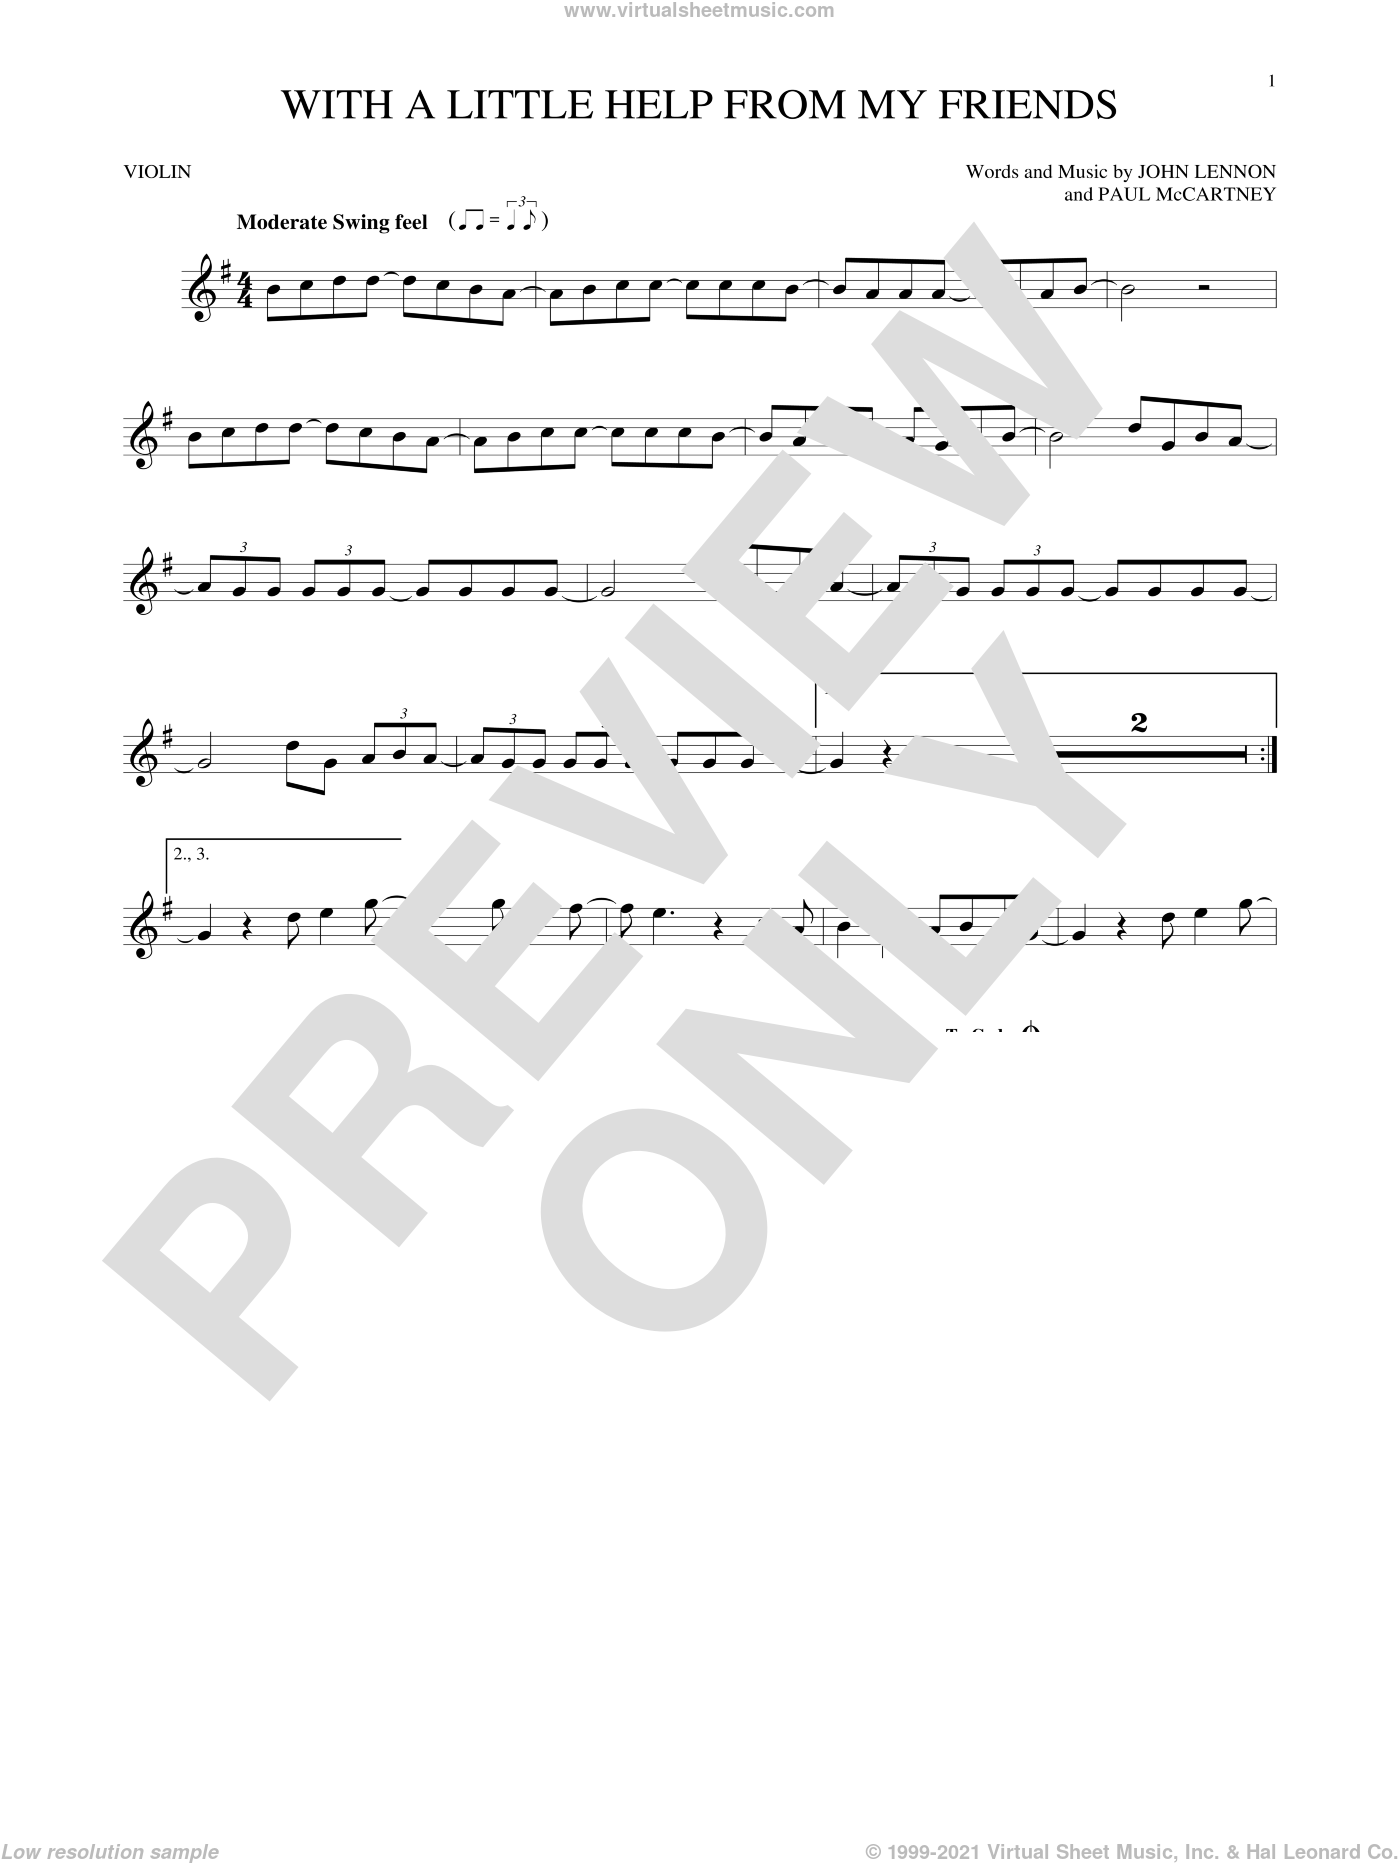 With A Little Help From My Friends sheet music for violin solo by The Beatles, Joe Cocker, John Lennon and Paul McCartney, intermediate skill level